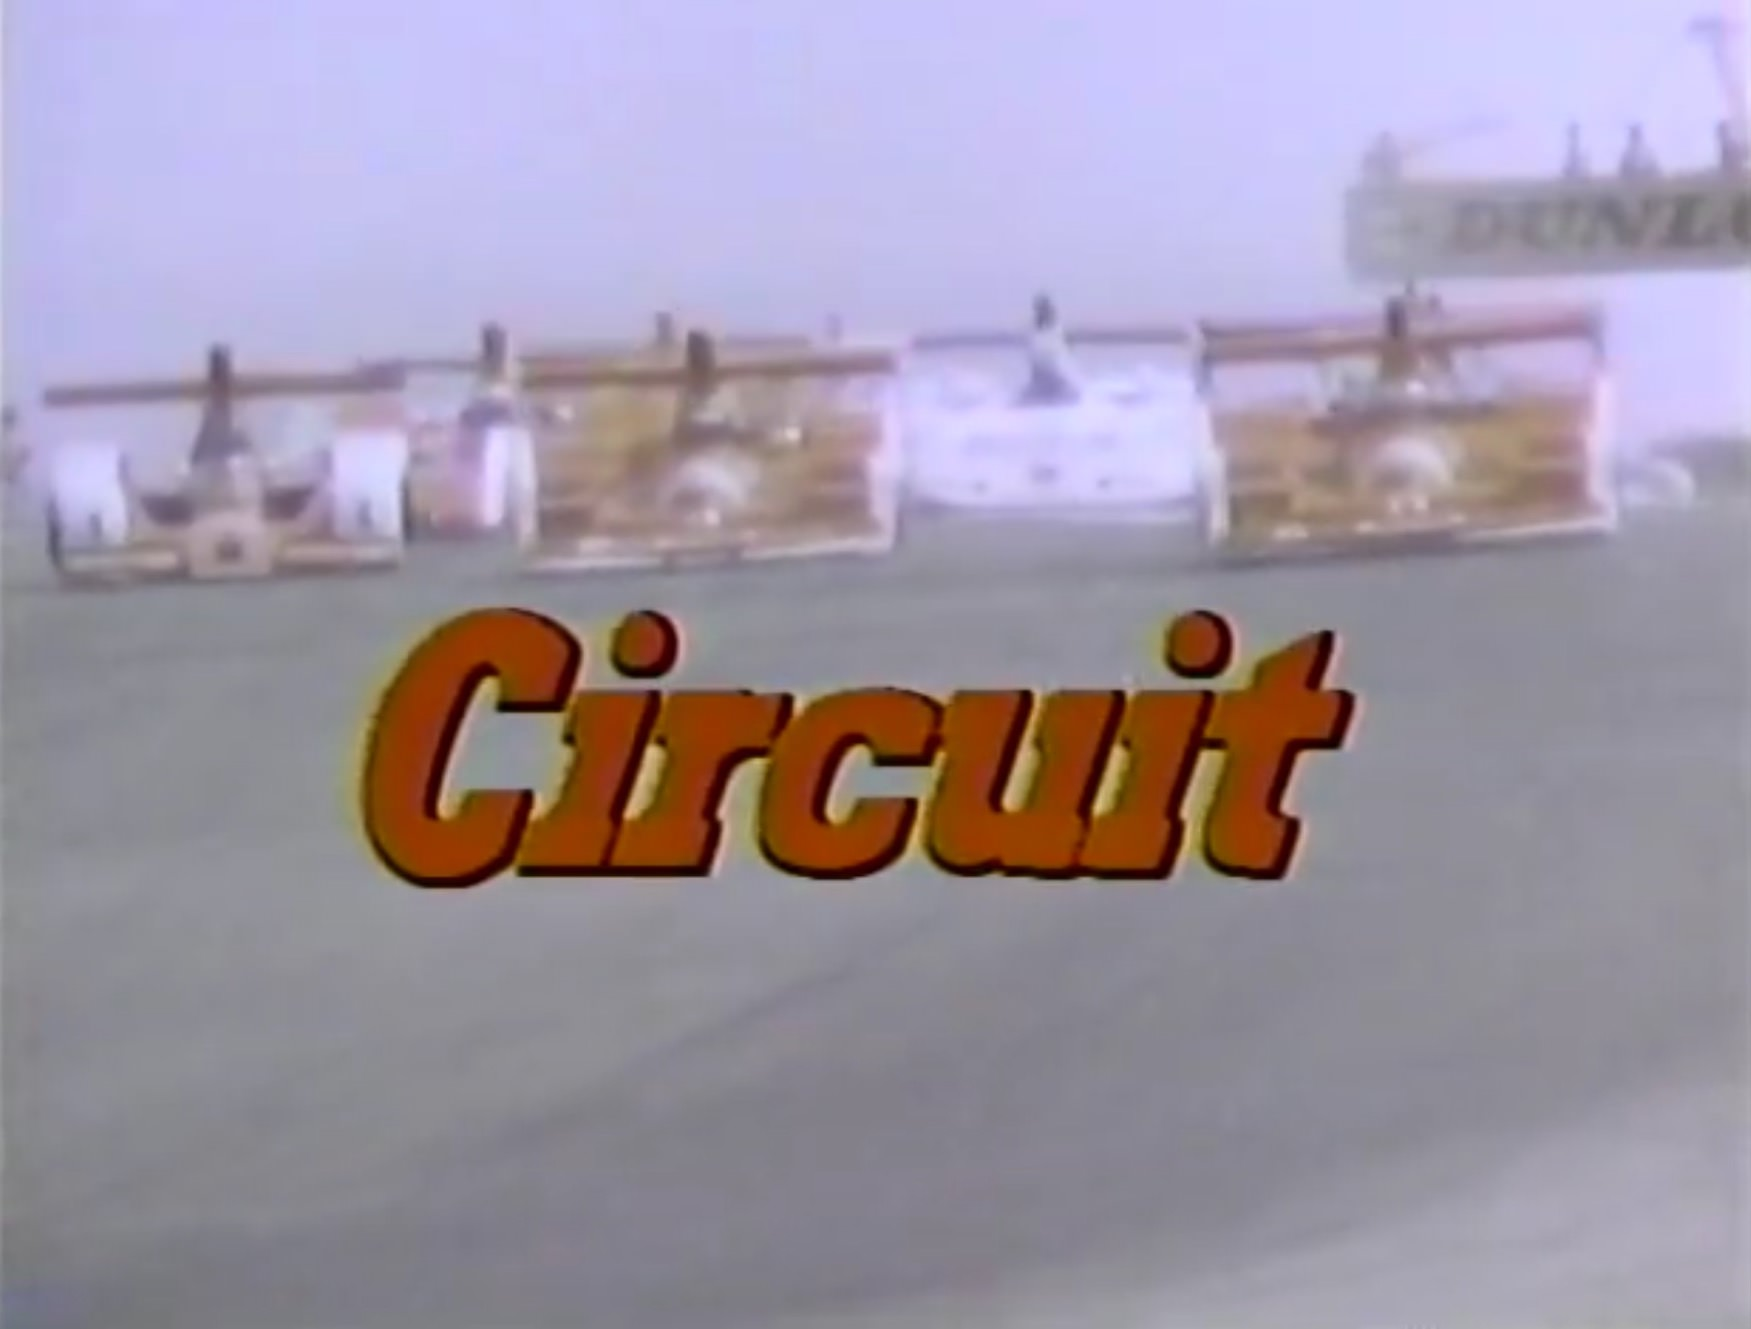 Must Watch Documentary: Circuit - A 1981 Can-Am Film Featuring Paul Newman